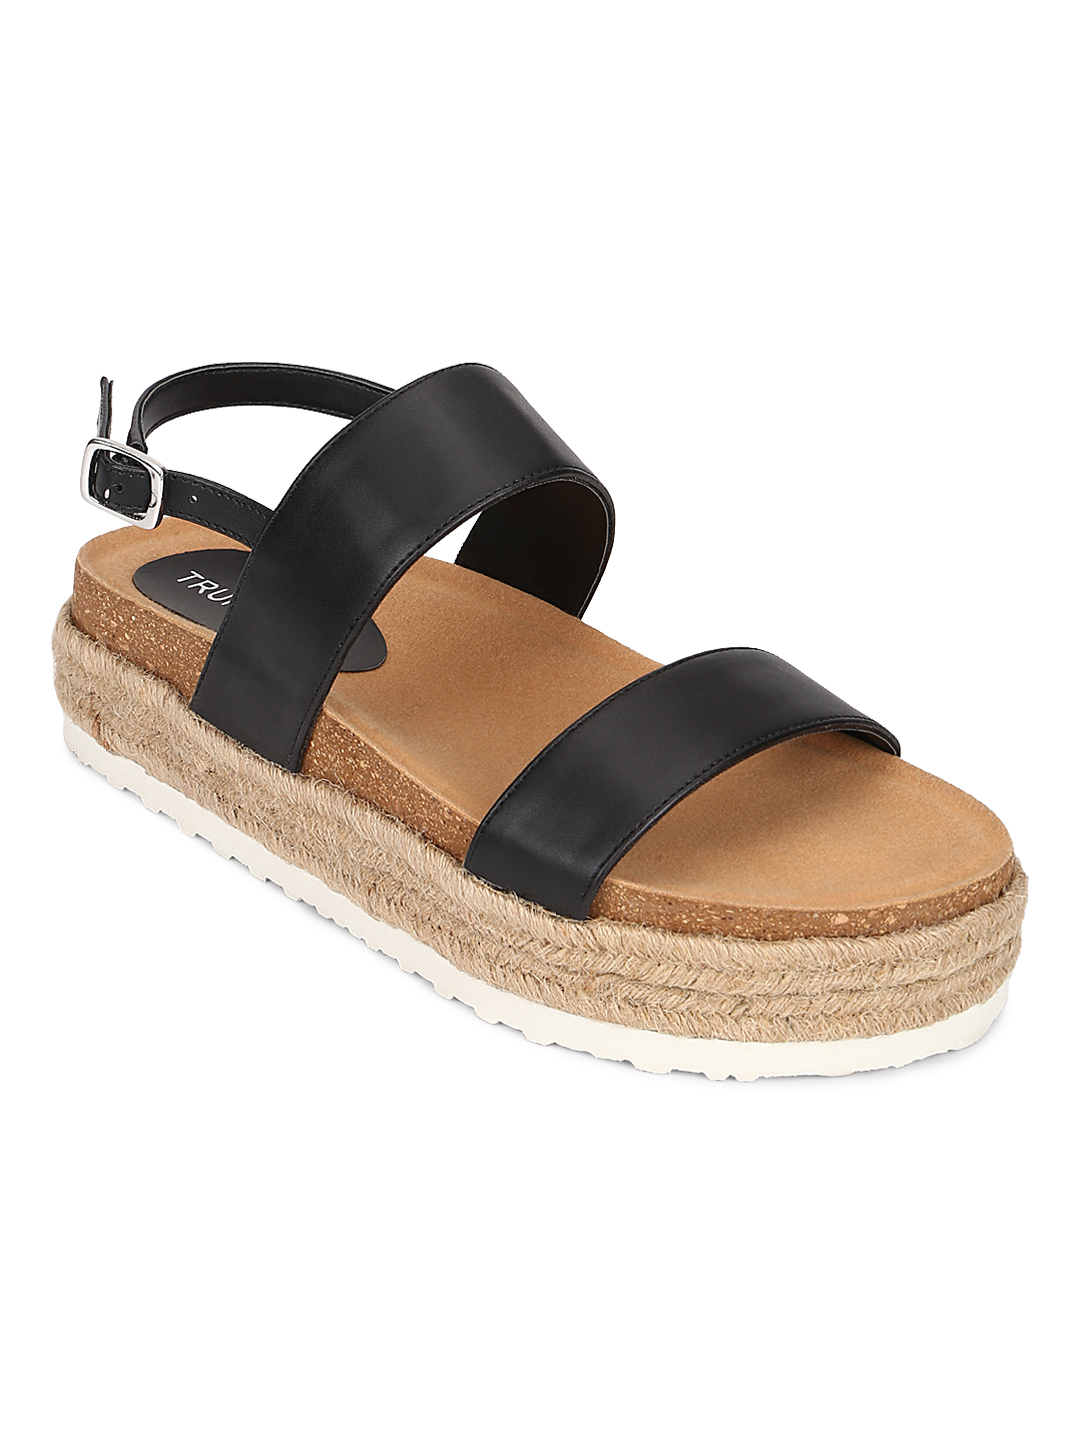 Truffle Collection   Truffle Collection Black PU Platform Wedges With Back Strap Espadrilles Sandals